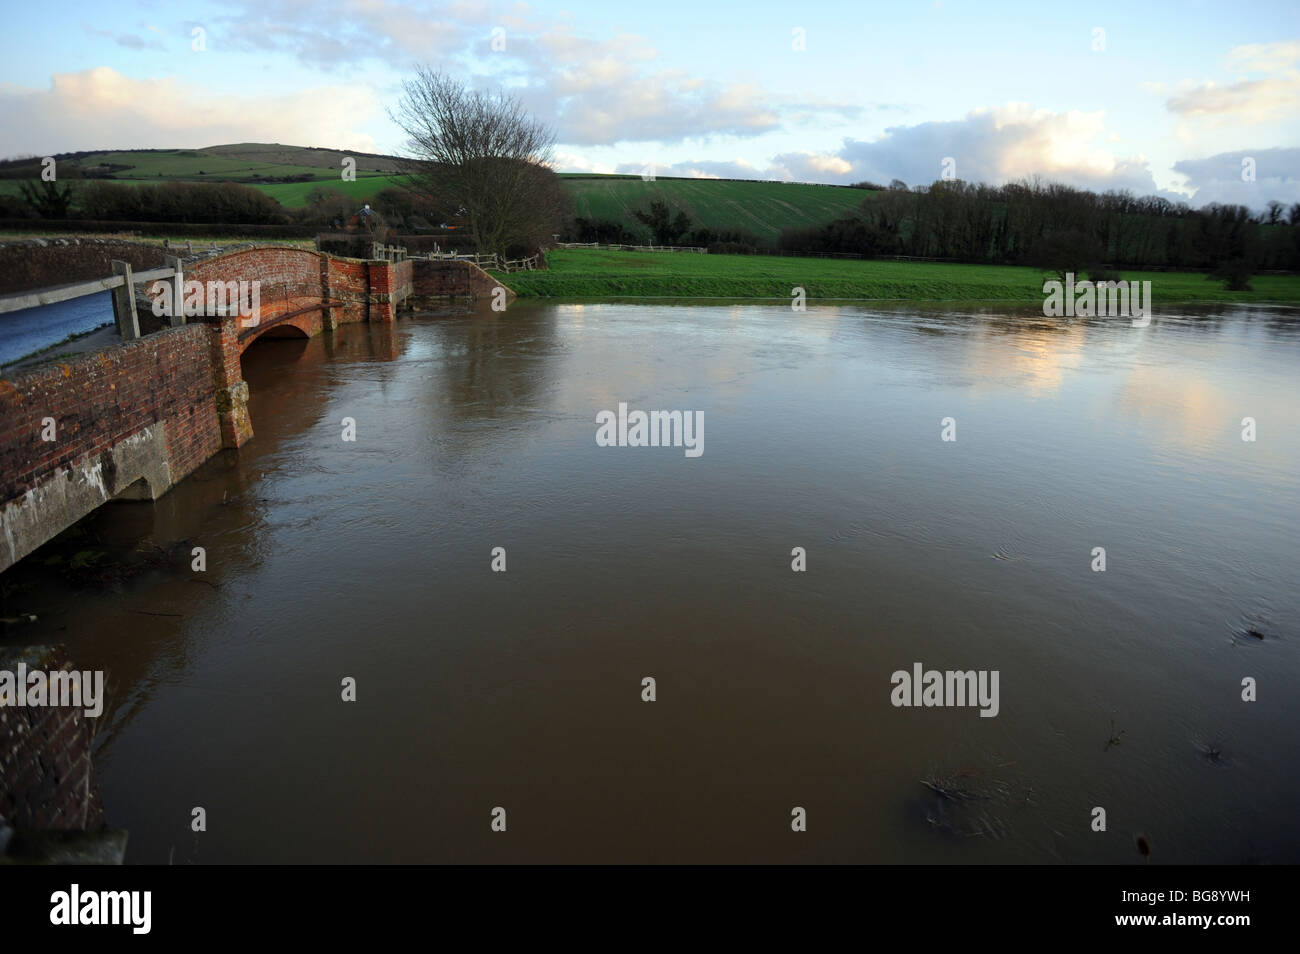 The river ouse at alfriston burst its banks and along with heavy rain flooded the surrounding fields Stock Photo